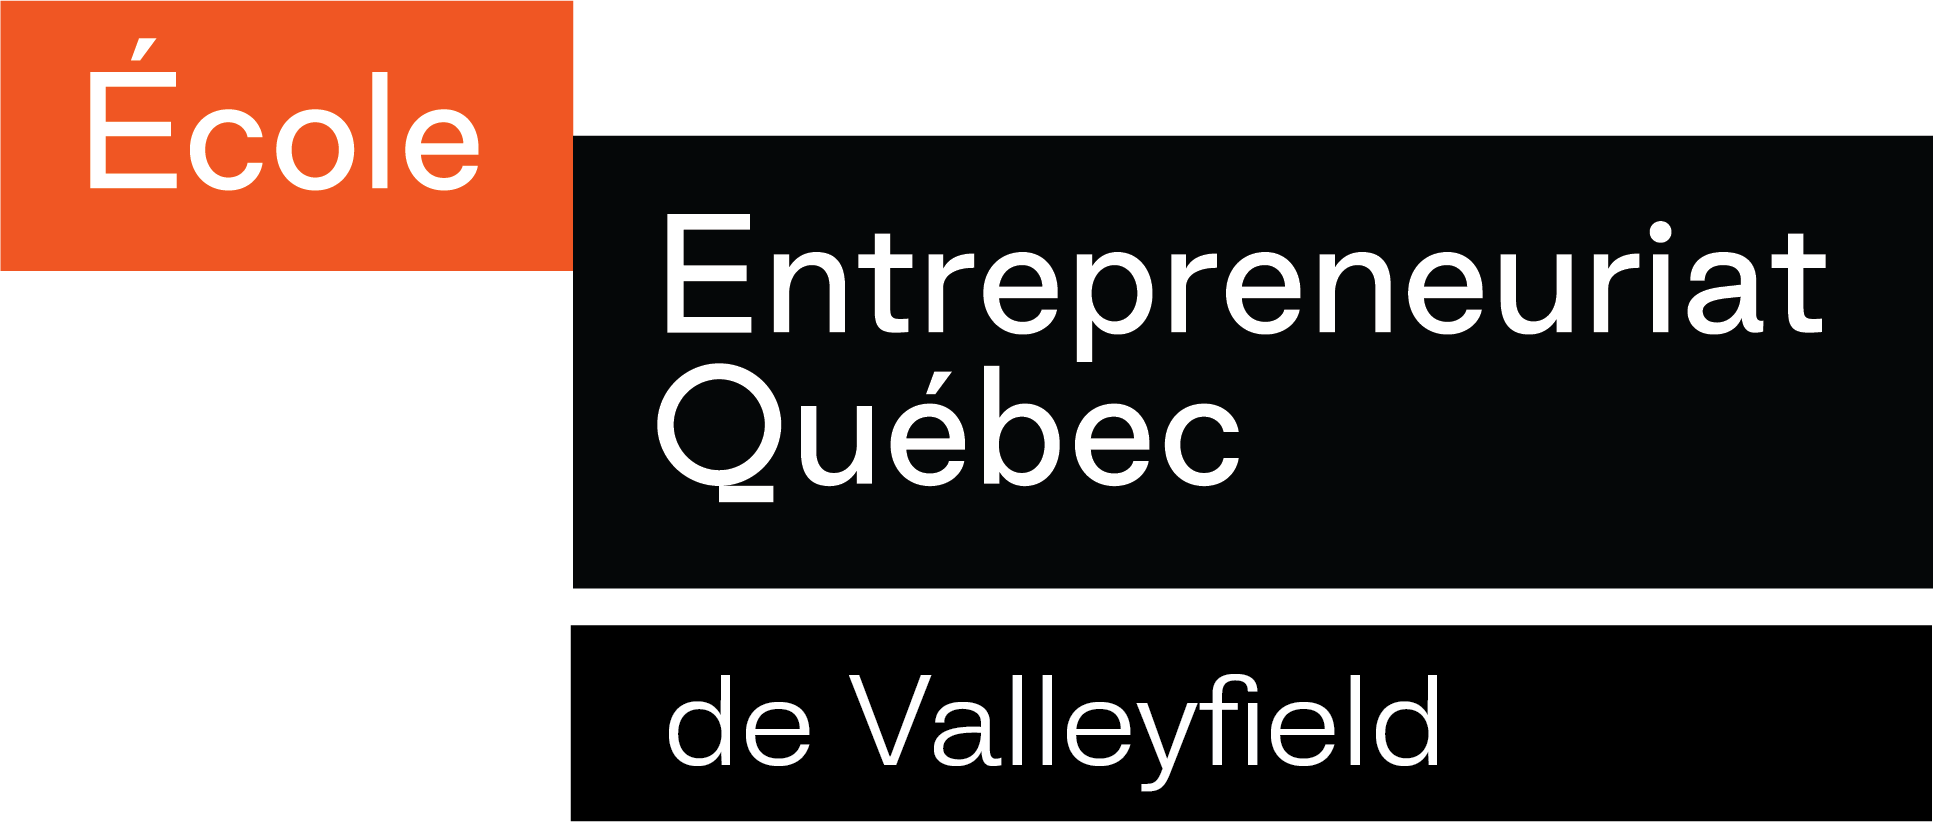 Logos ÉEQ de Valleyfield.jpg